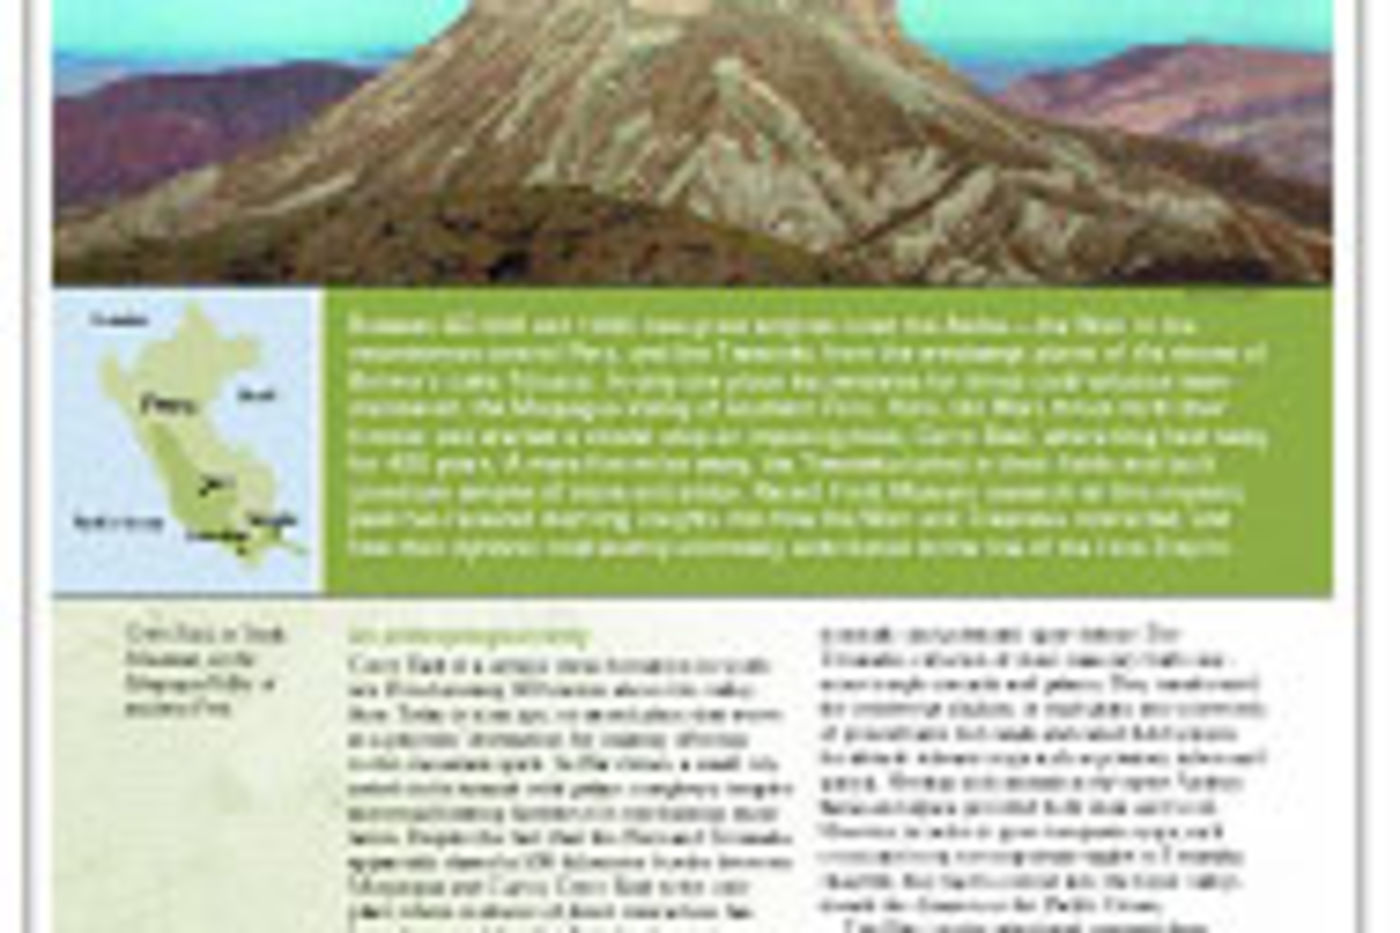 Article in the Summer 2003 issue of In The Field magazine.